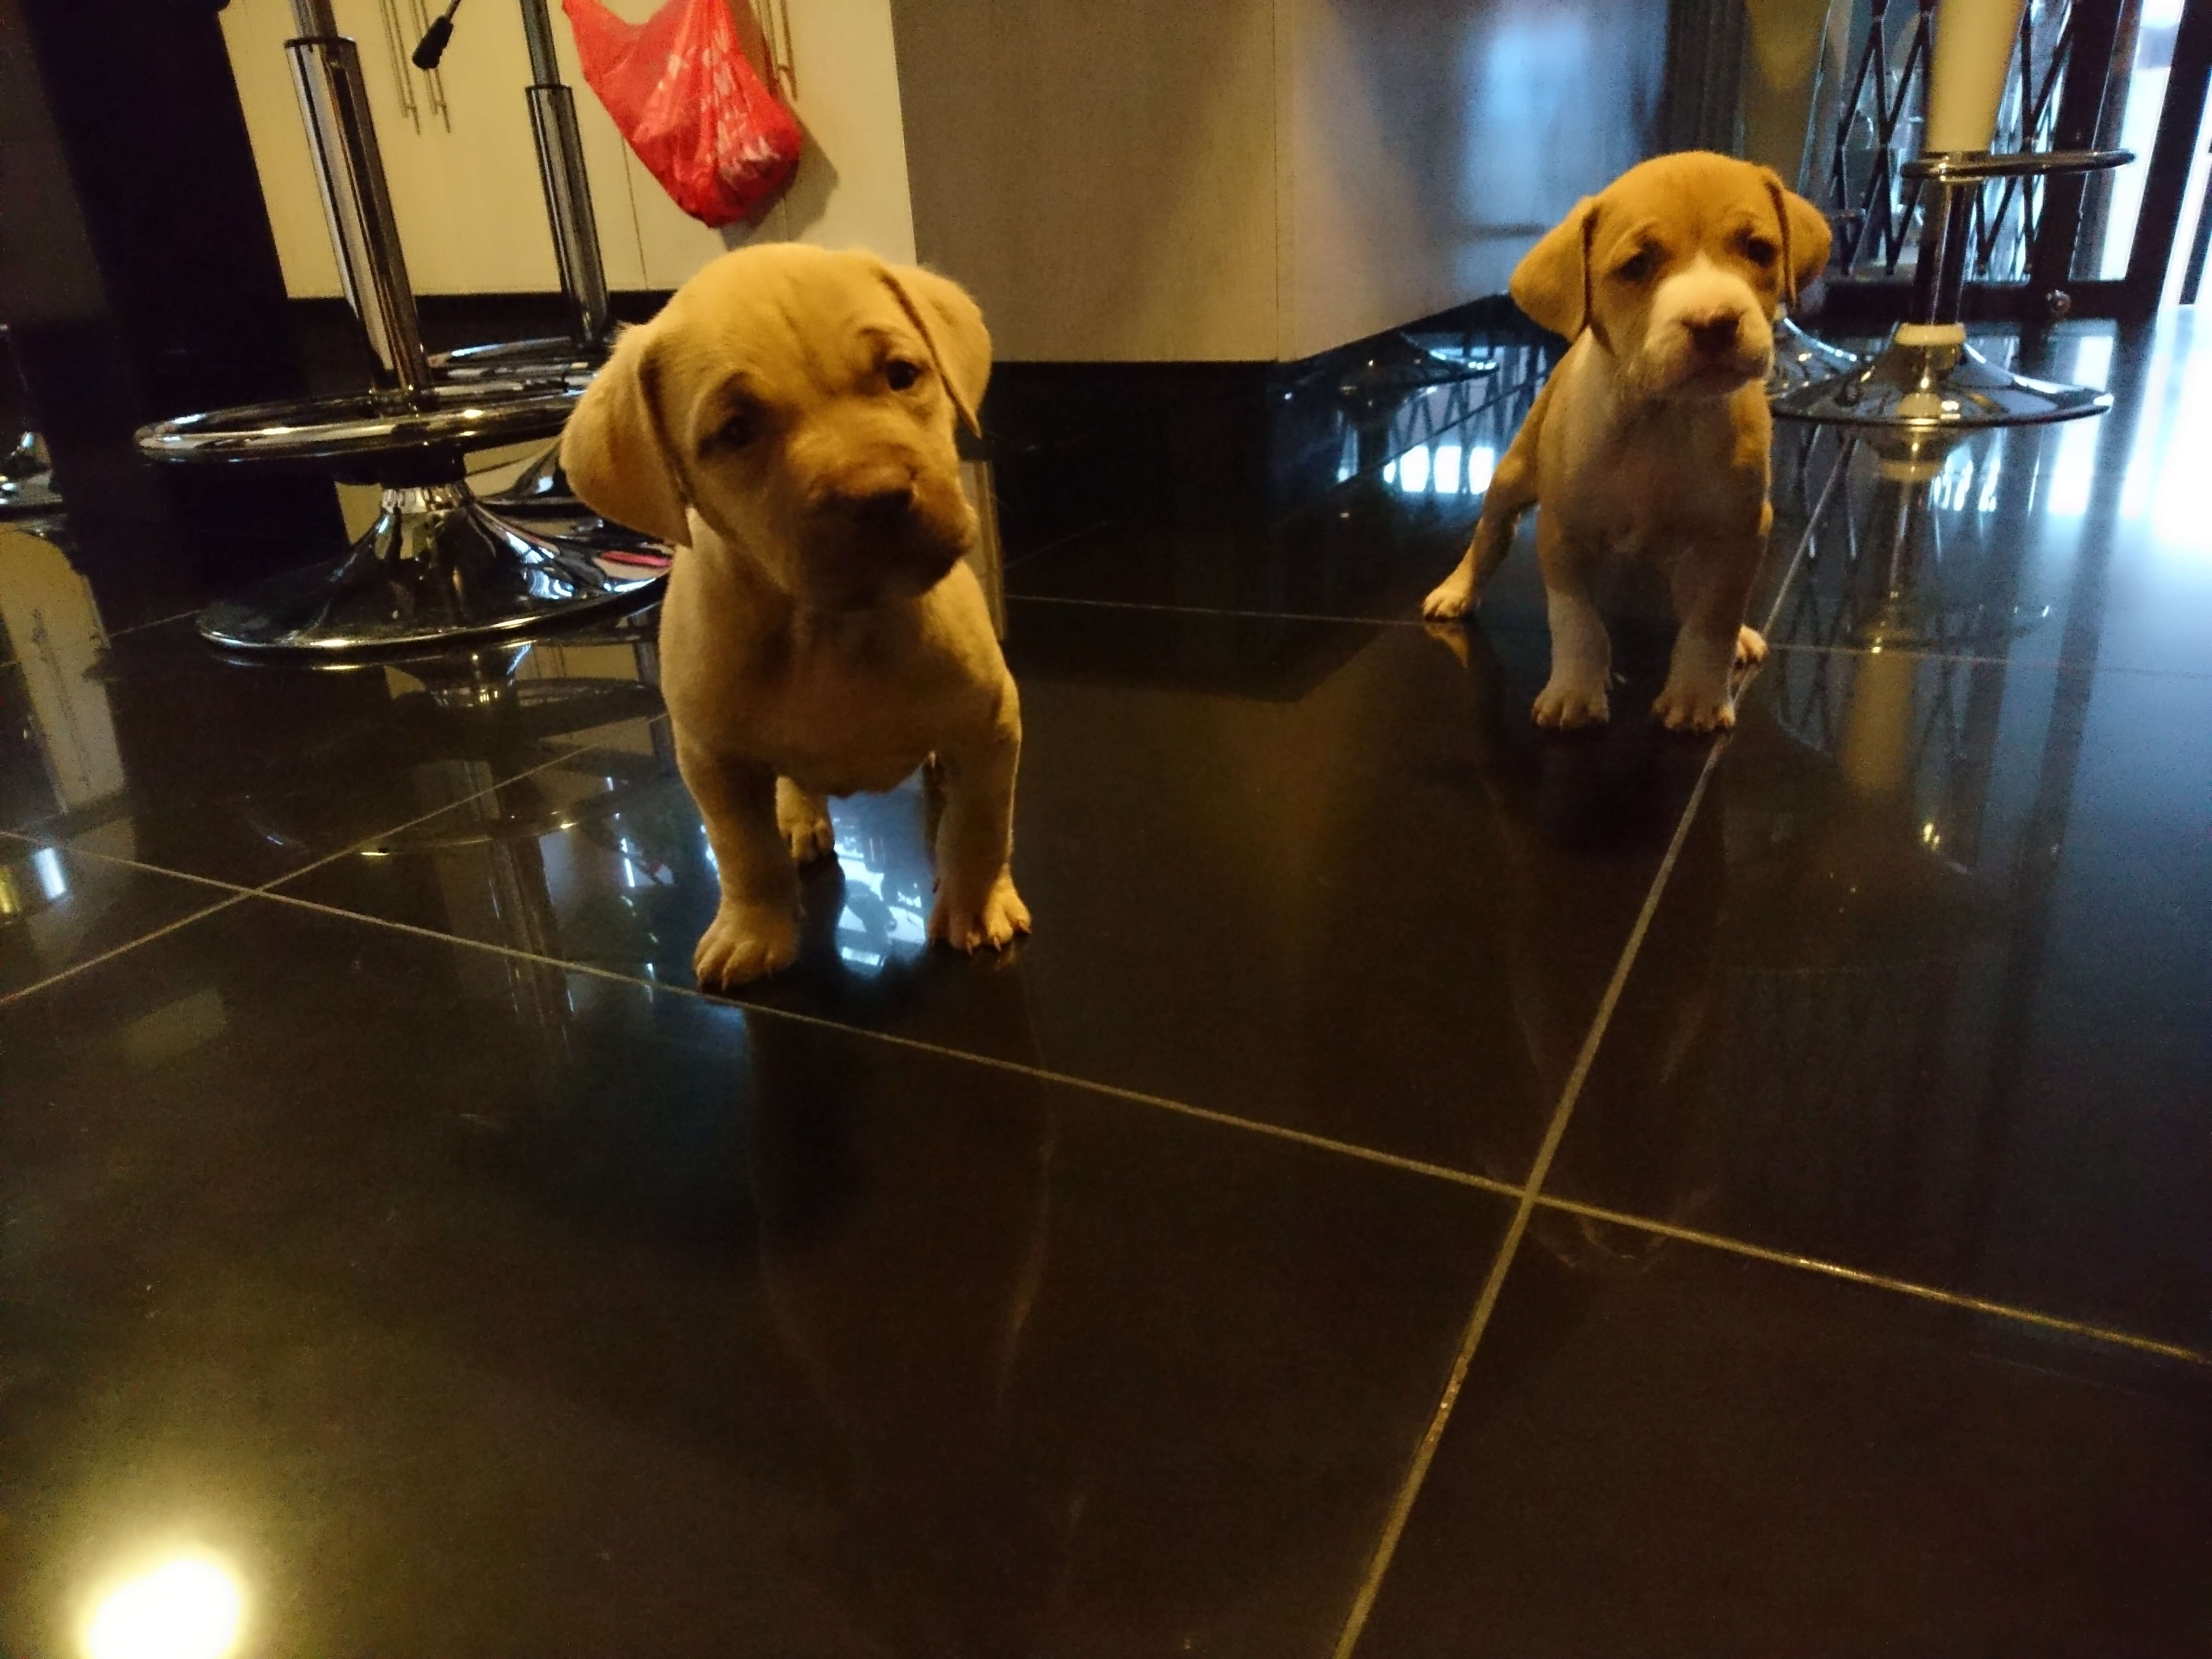 Pitbull Puppies for Sale in Johannesburg by Pumesen Sominathan Moodley